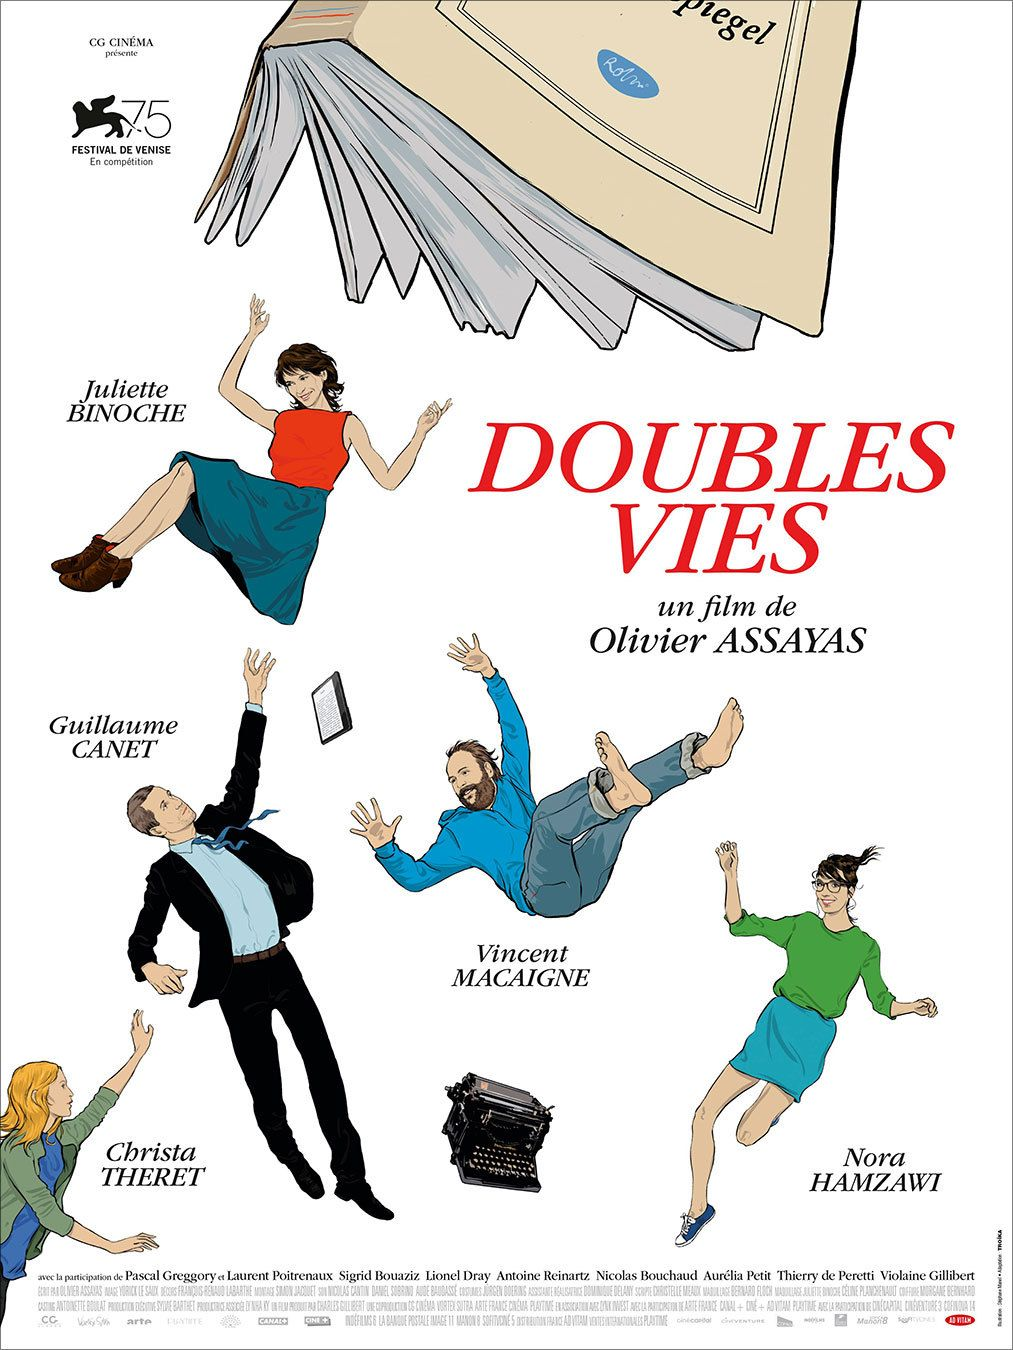 French Grande For Doubles Vies Aka Non Fiction Olivier Assayas